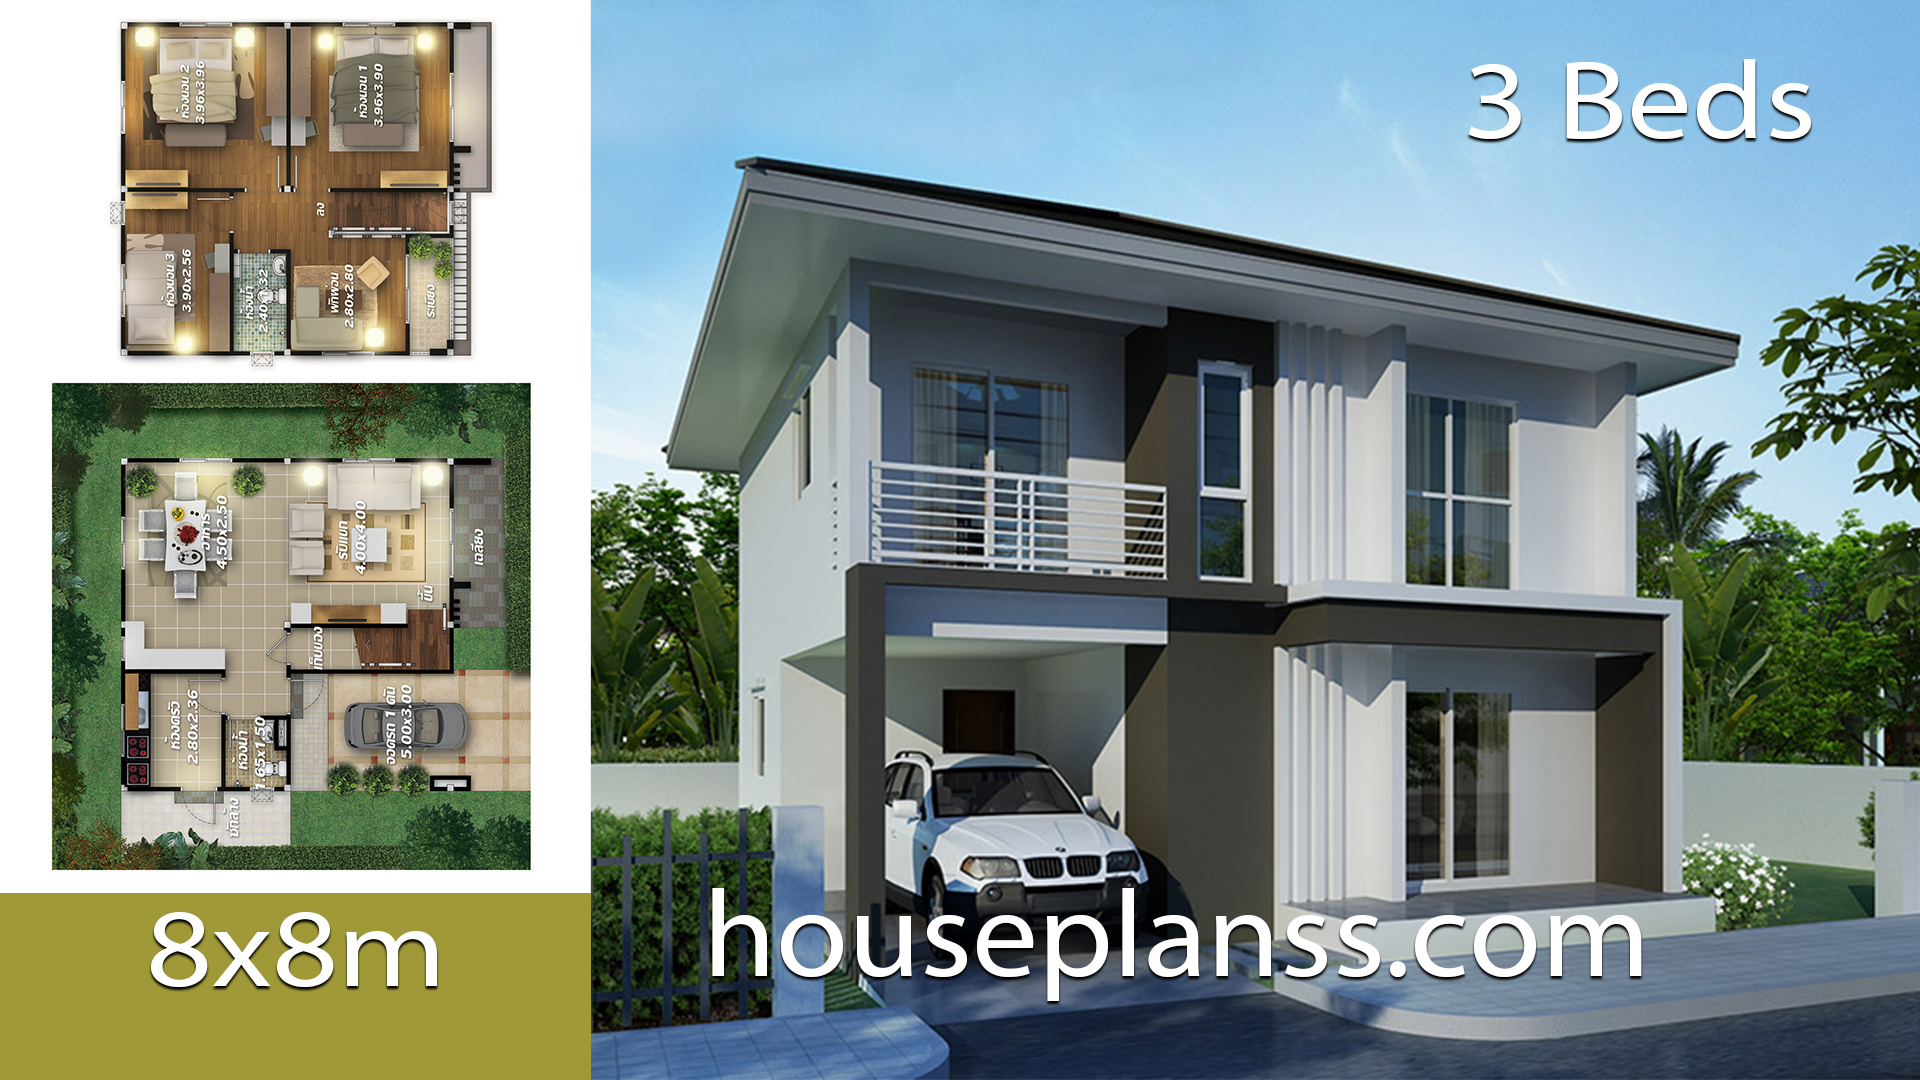 House plans design idea 8×8 with 3 Bedrooms